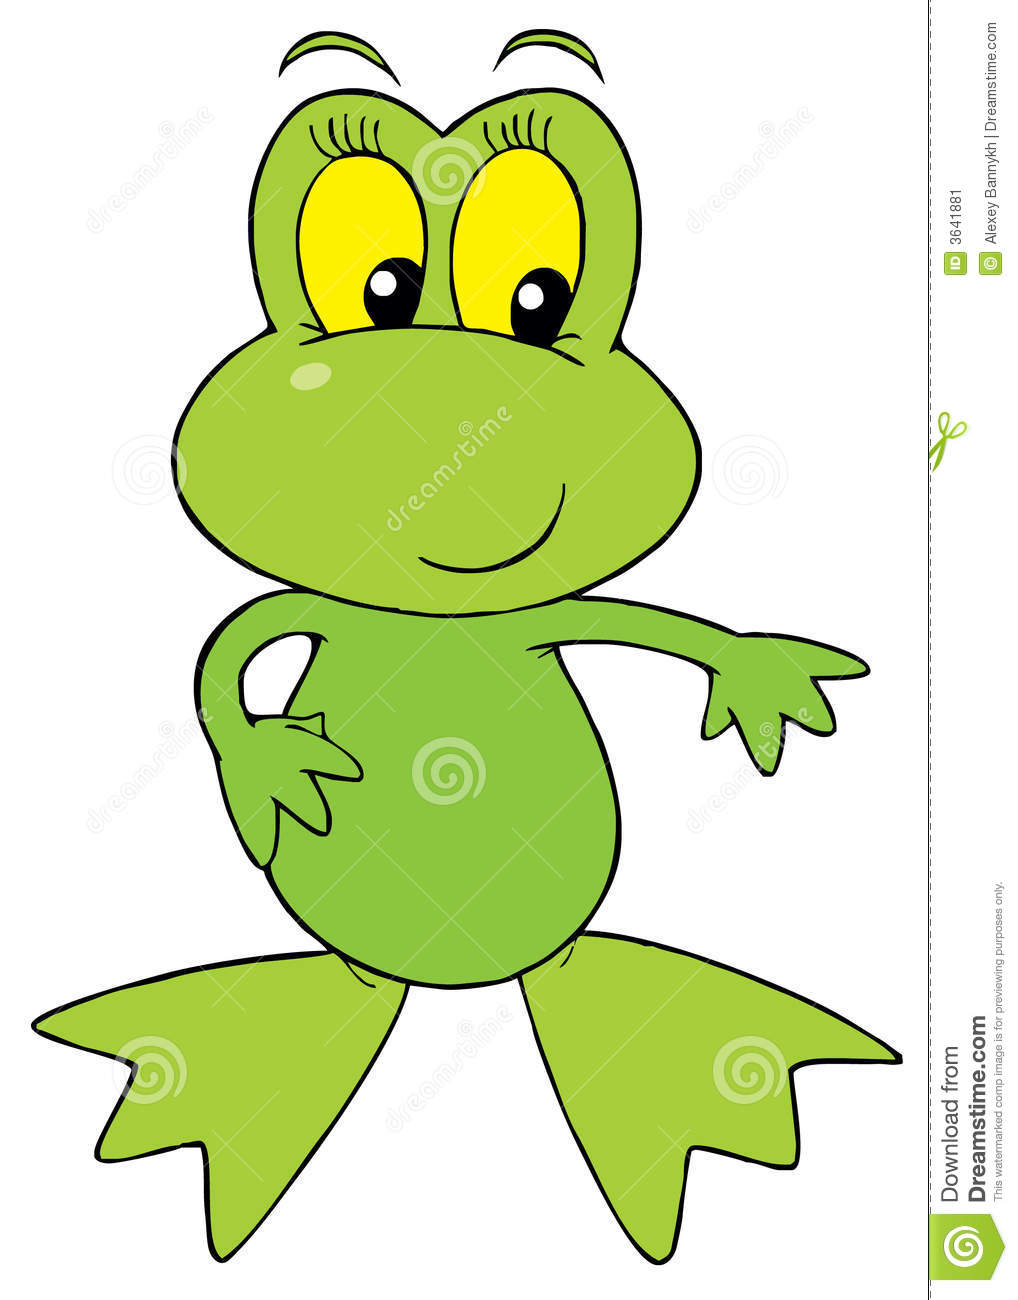 green frog clipart - photo #19